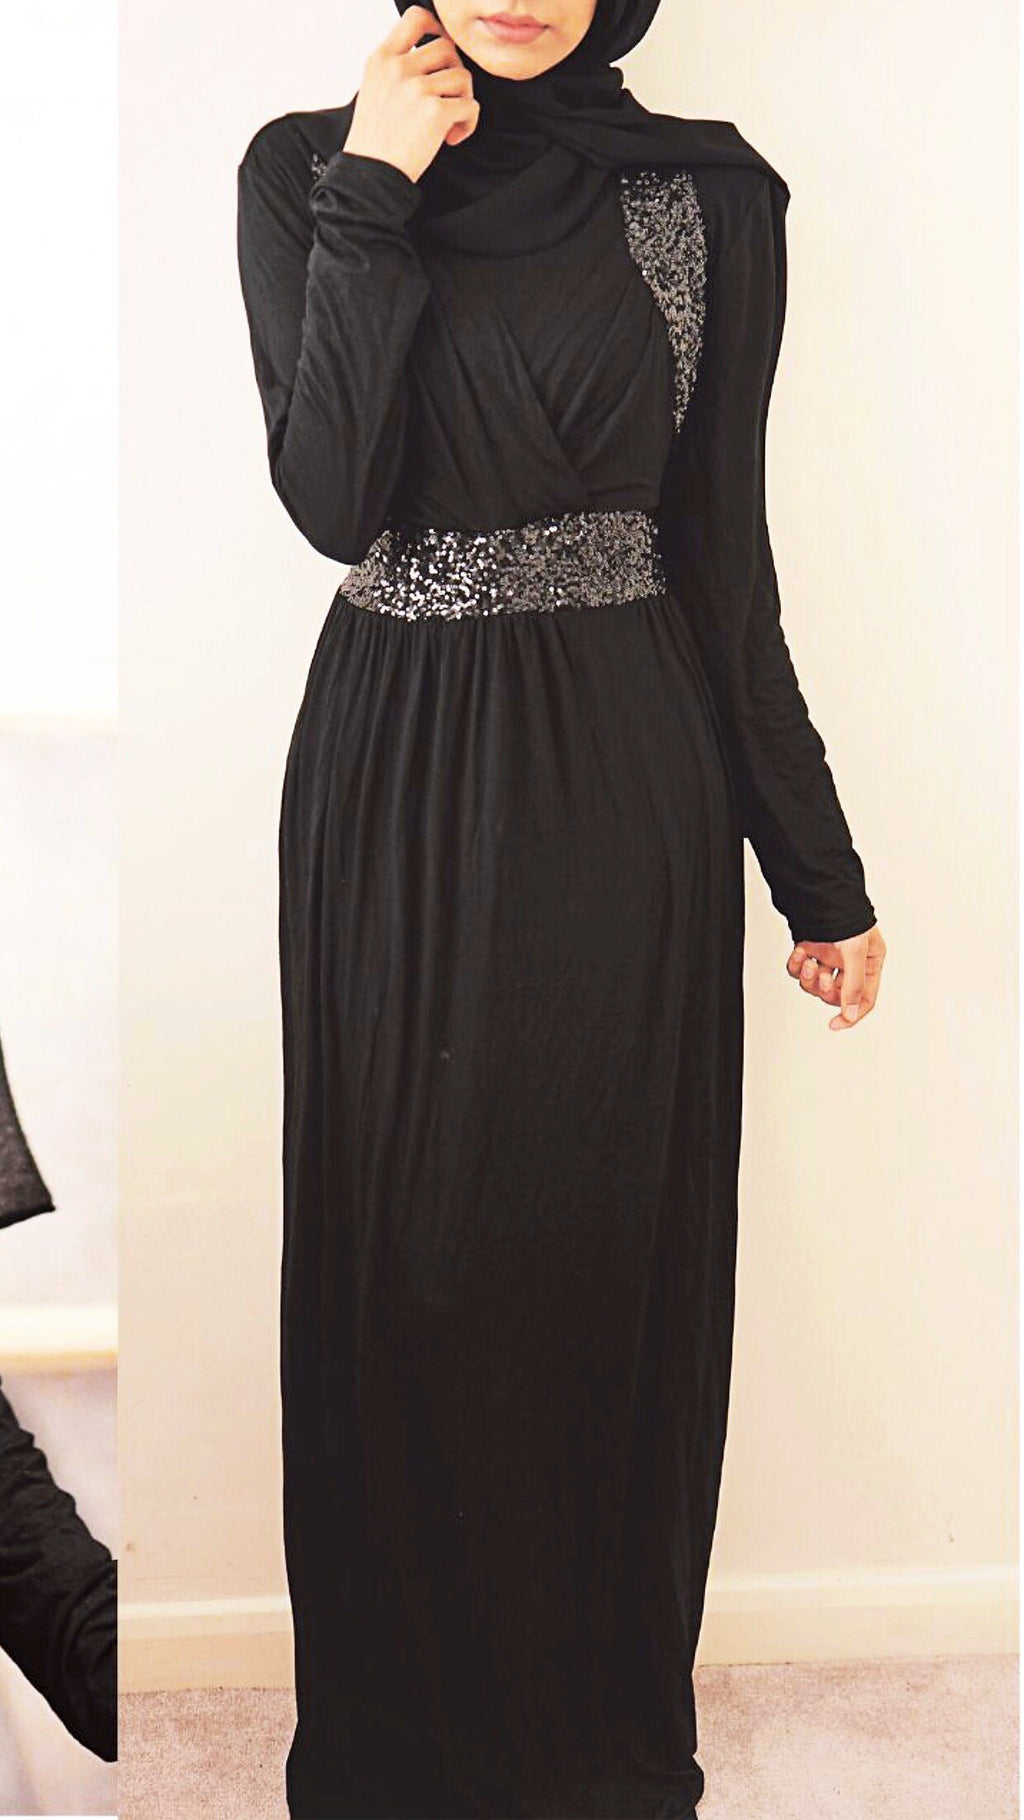 MAXI DRESS GLITTER TASNIM / last chance